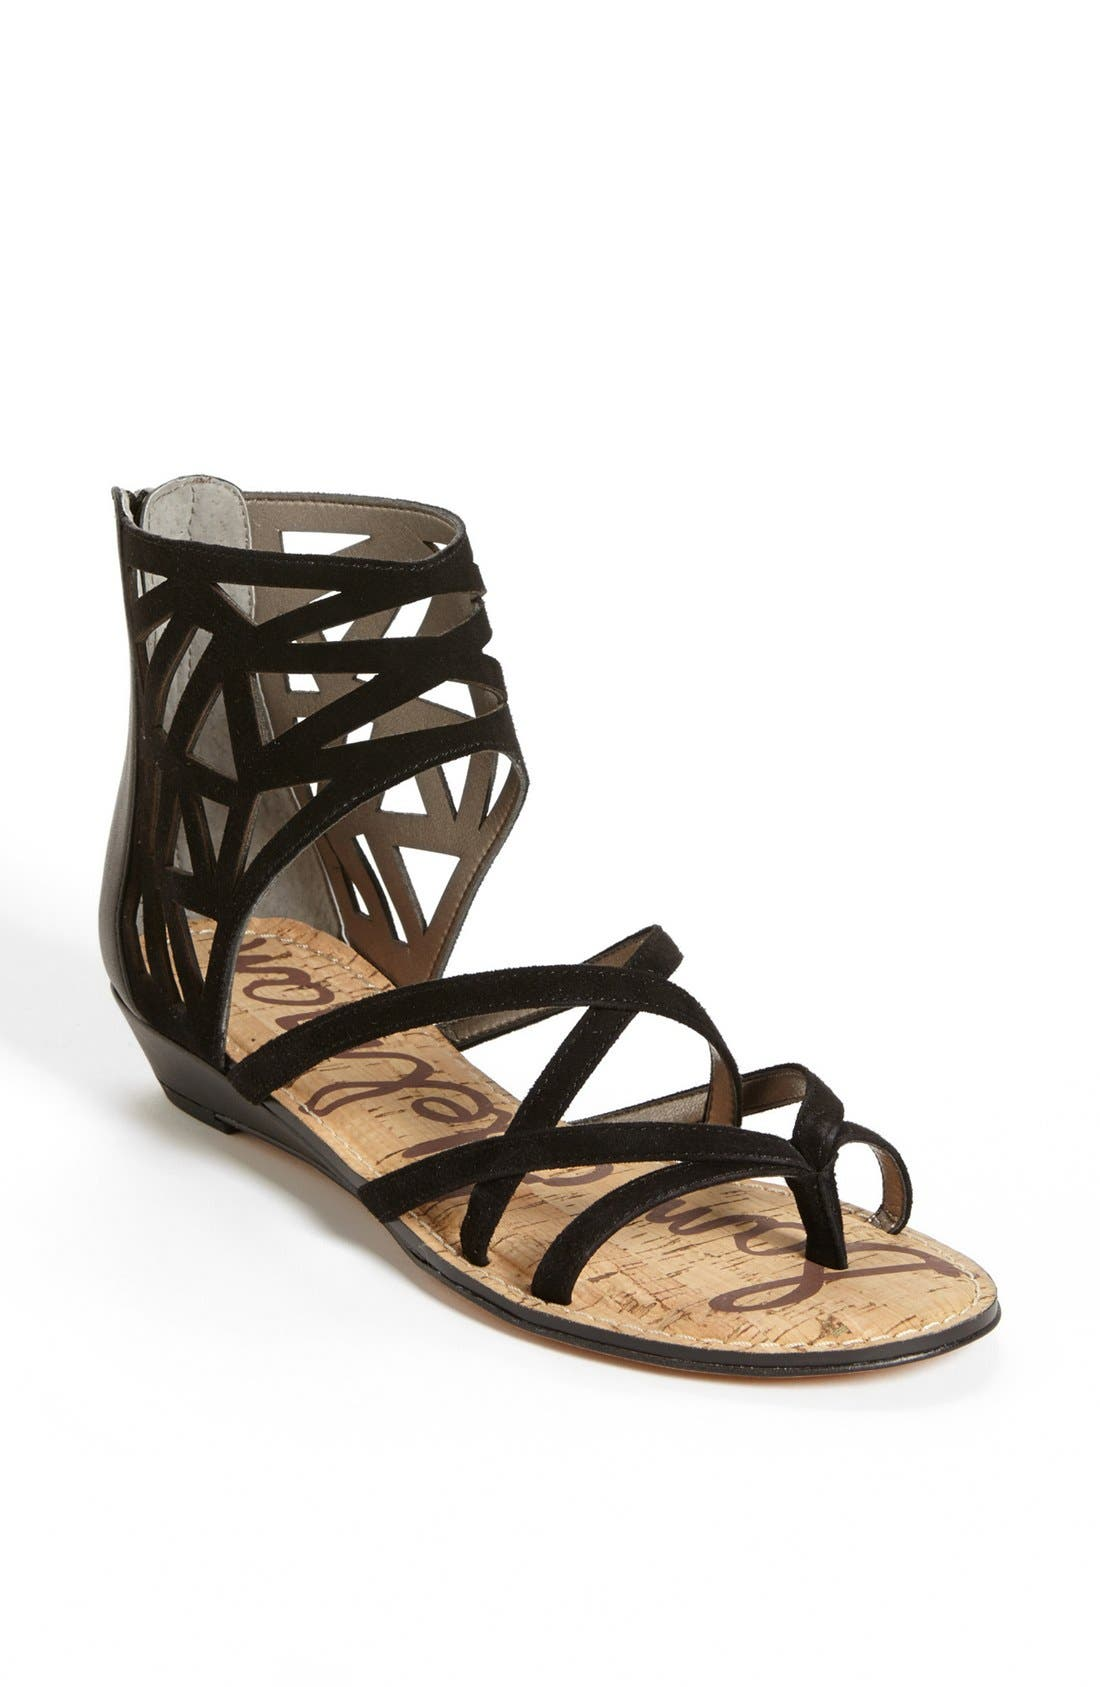 Main Image - Sam Edelman 'Dana' Leather Sandal